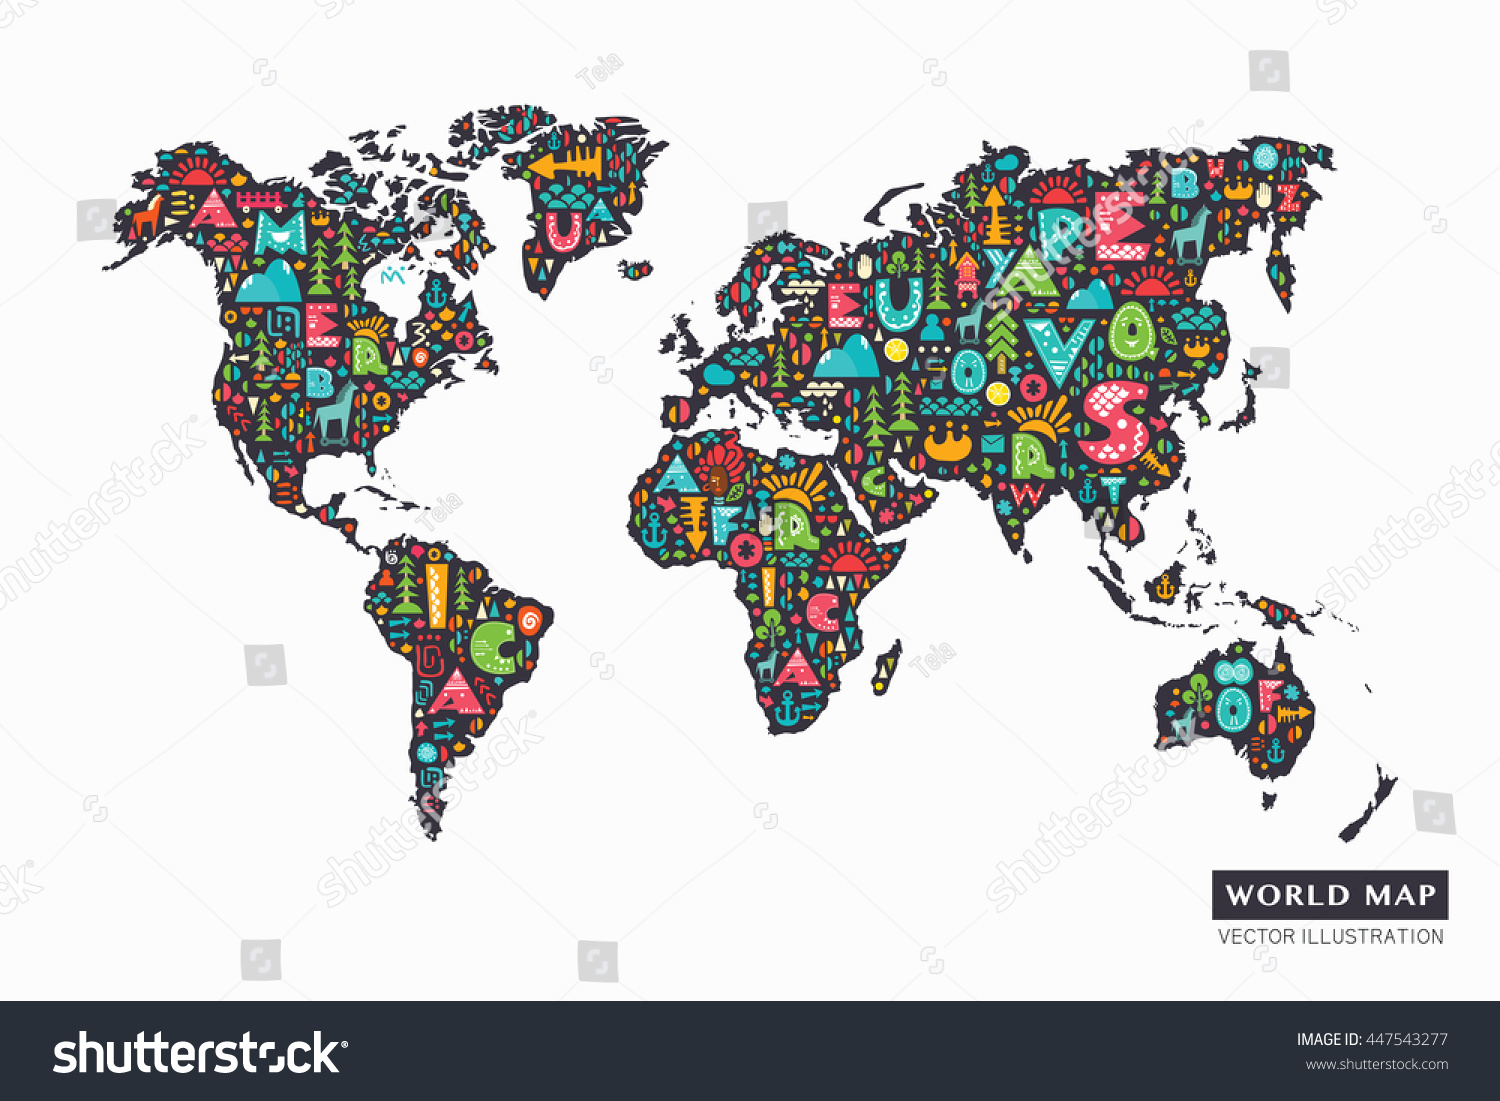 Funny cartoon world map alphabet letters vectores en stock 447543277 funny cartoon world map with alphabet letters and design abstract elements vector illustration gumiabroncs Choice Image